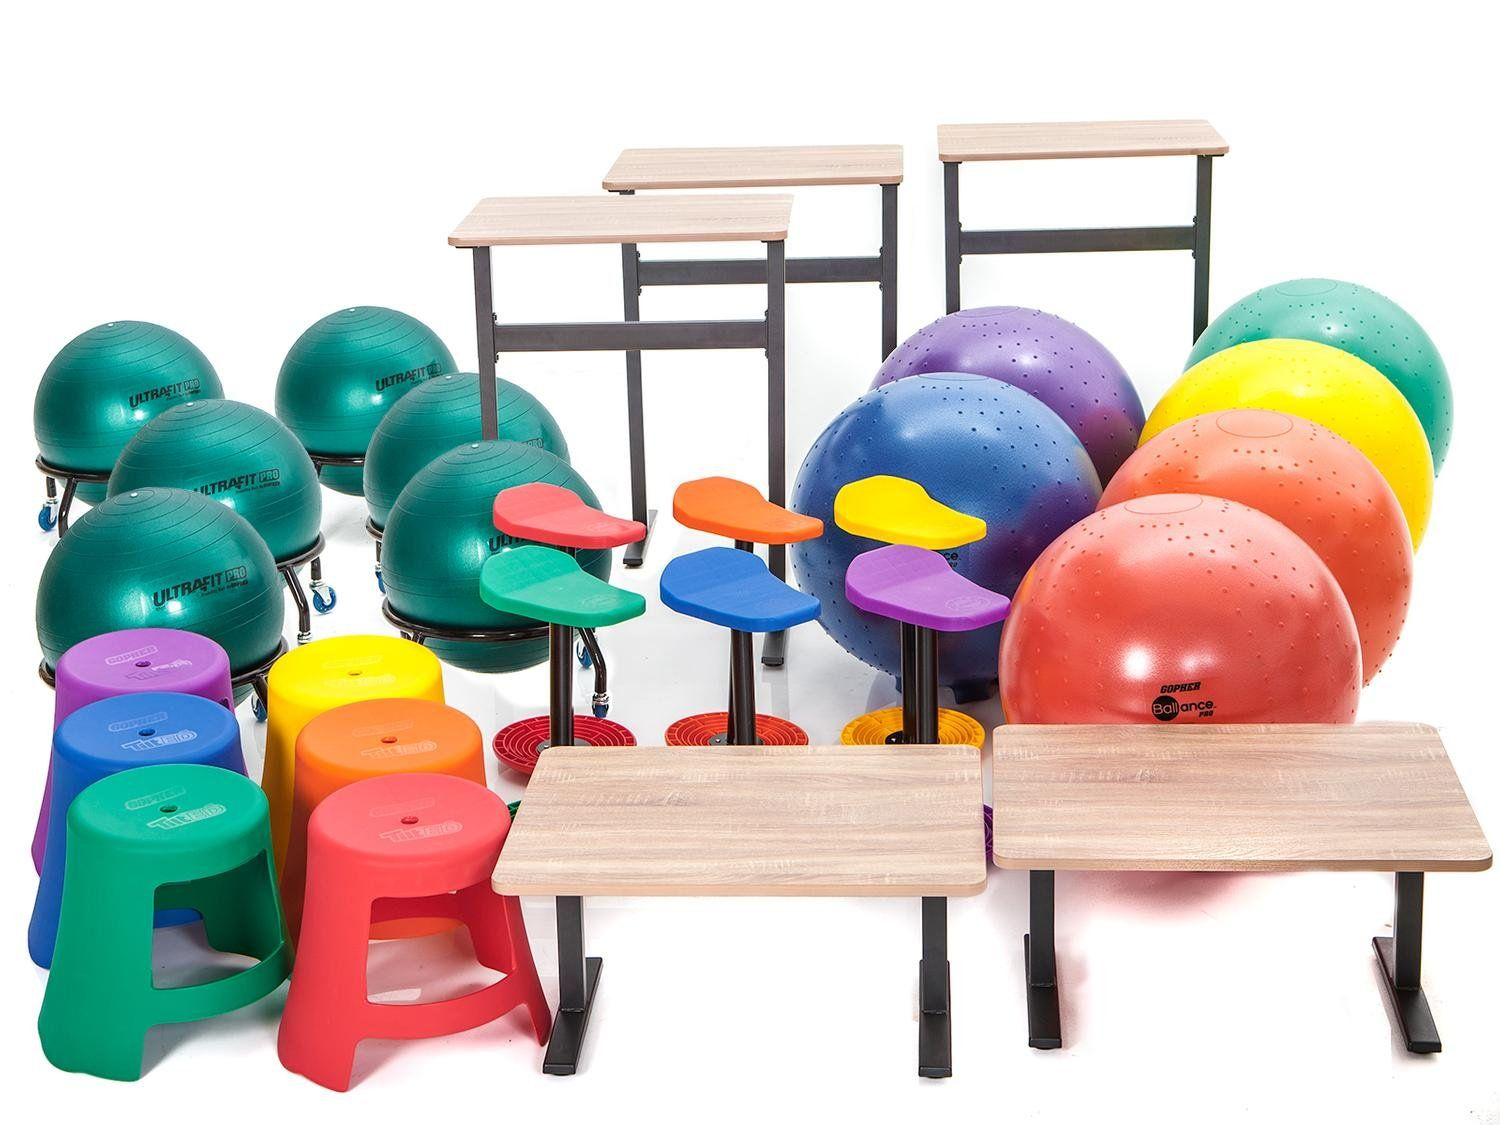 Active seating classroom premium packs with images